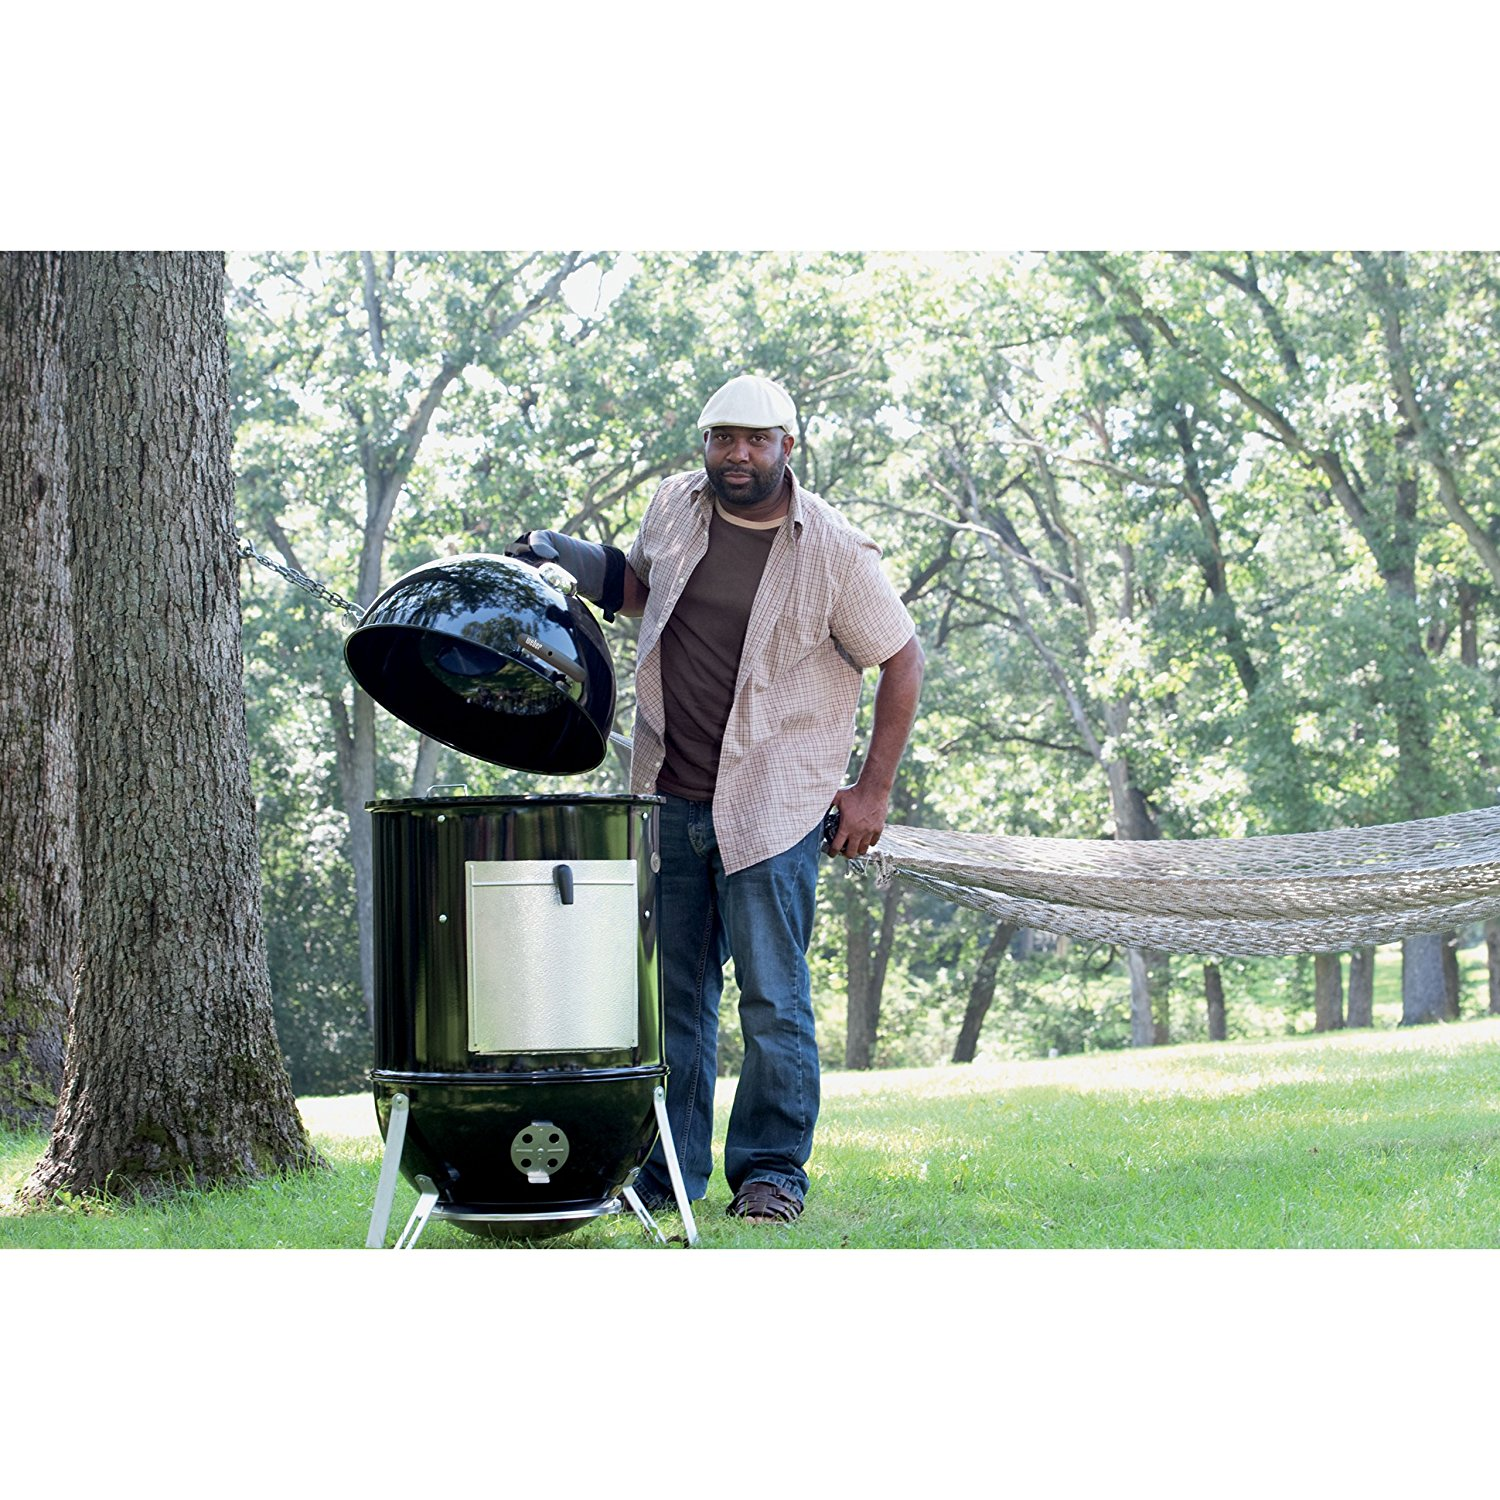 Best Smoker for Outdoor Cooking-Picking the Best Smoker